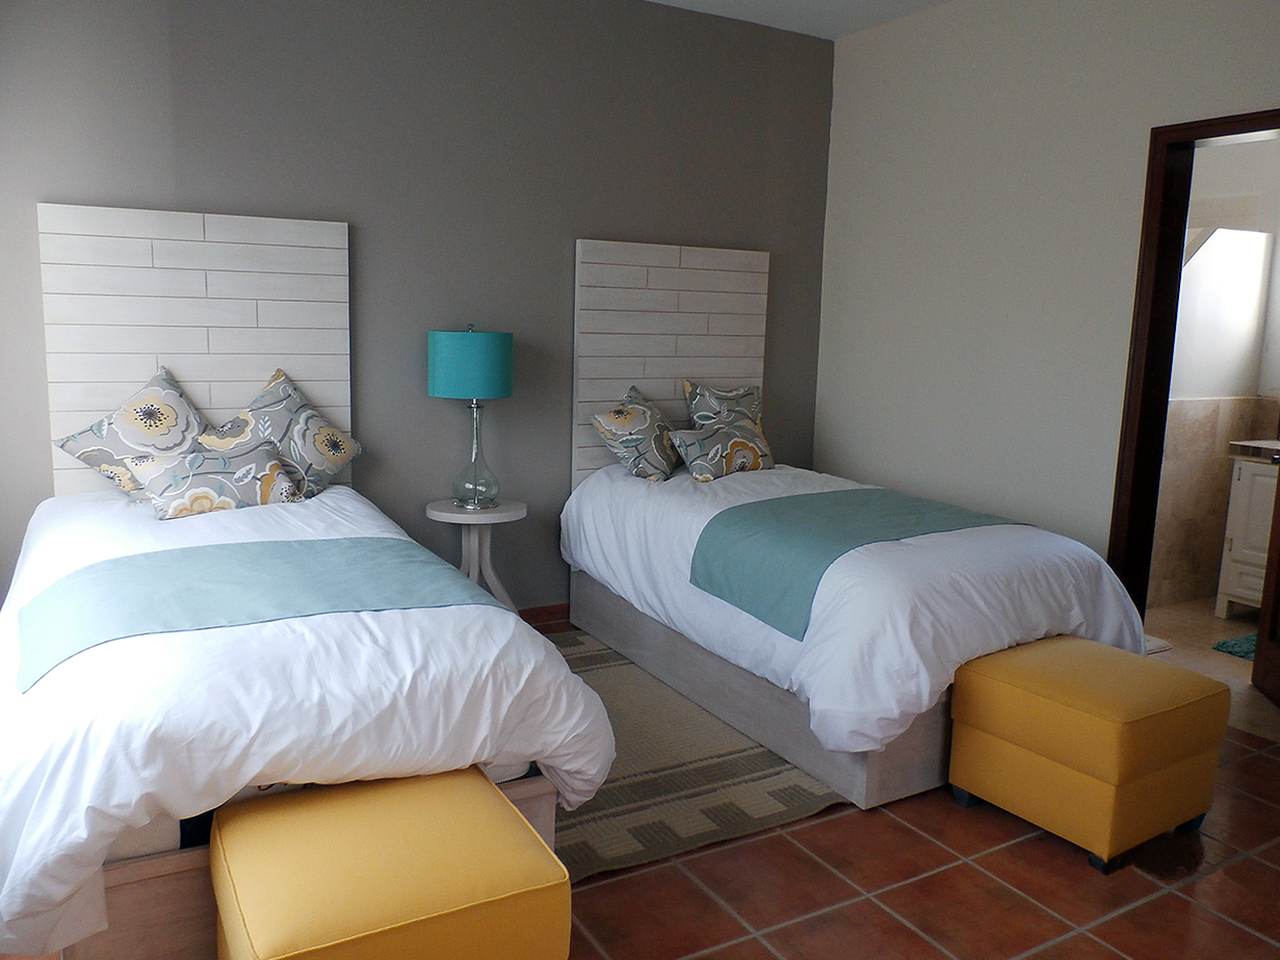 Private room with 2 twin beds and Private Bath at Divers Inn MX Bed & Breakfast in La Paz, Mexico